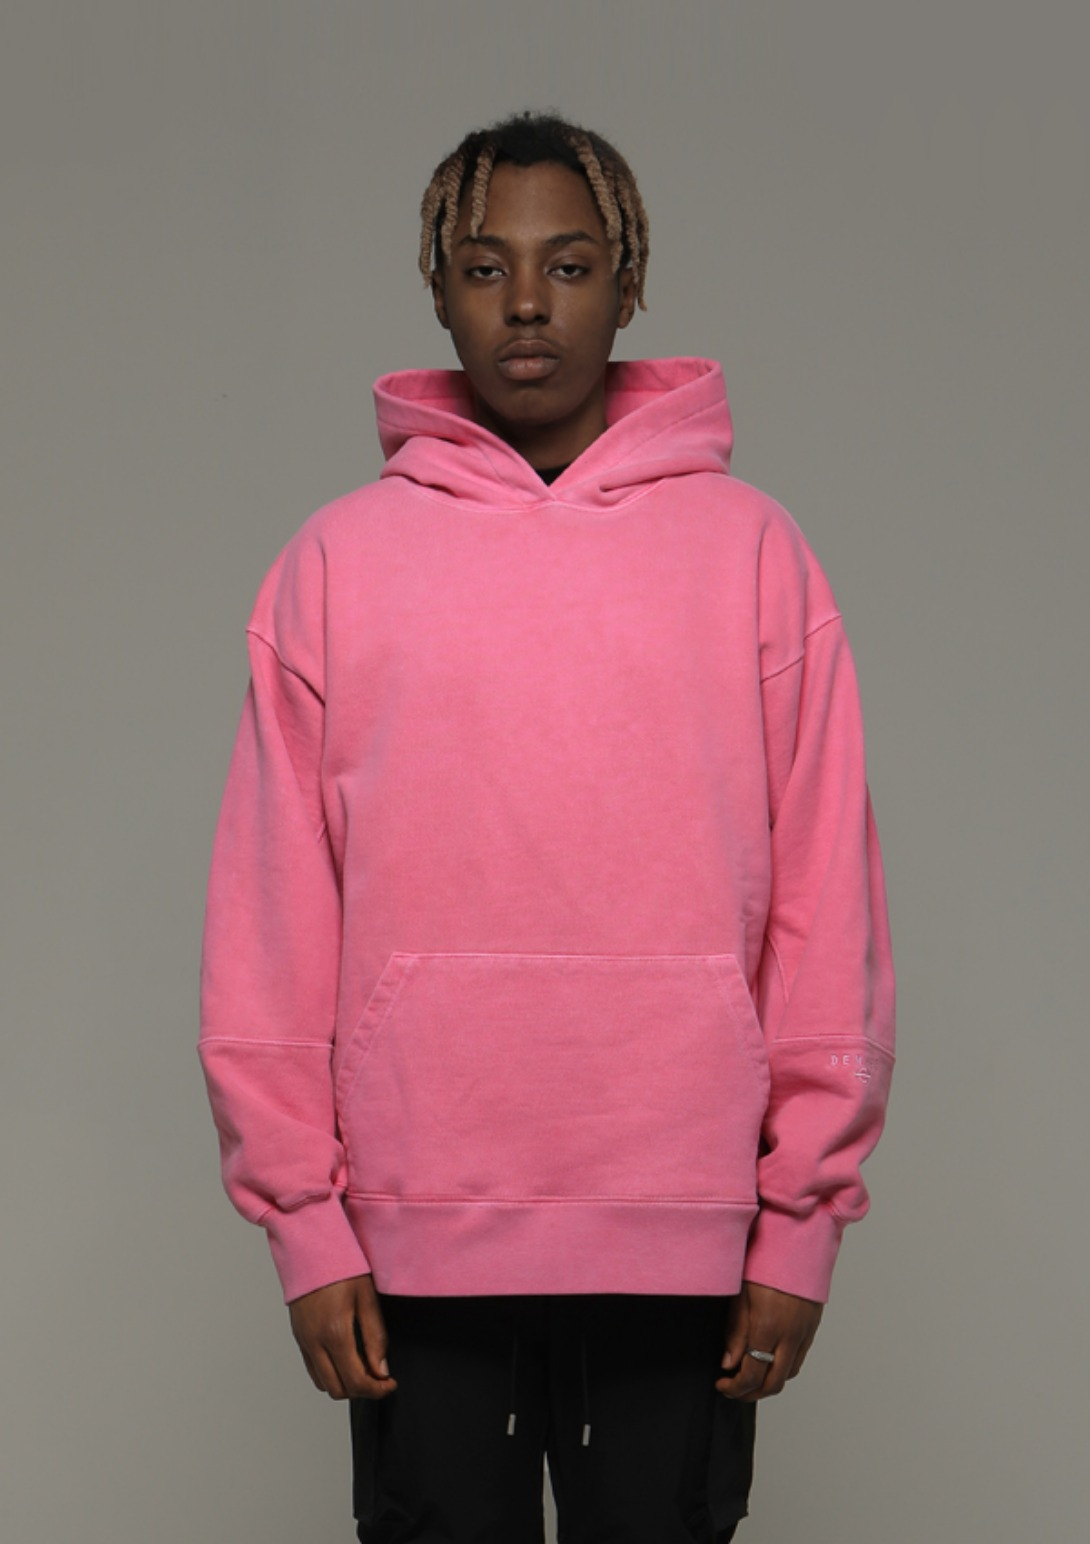 Own label brand[DENAGE] Heavy Armor Washing Hoodies Pink